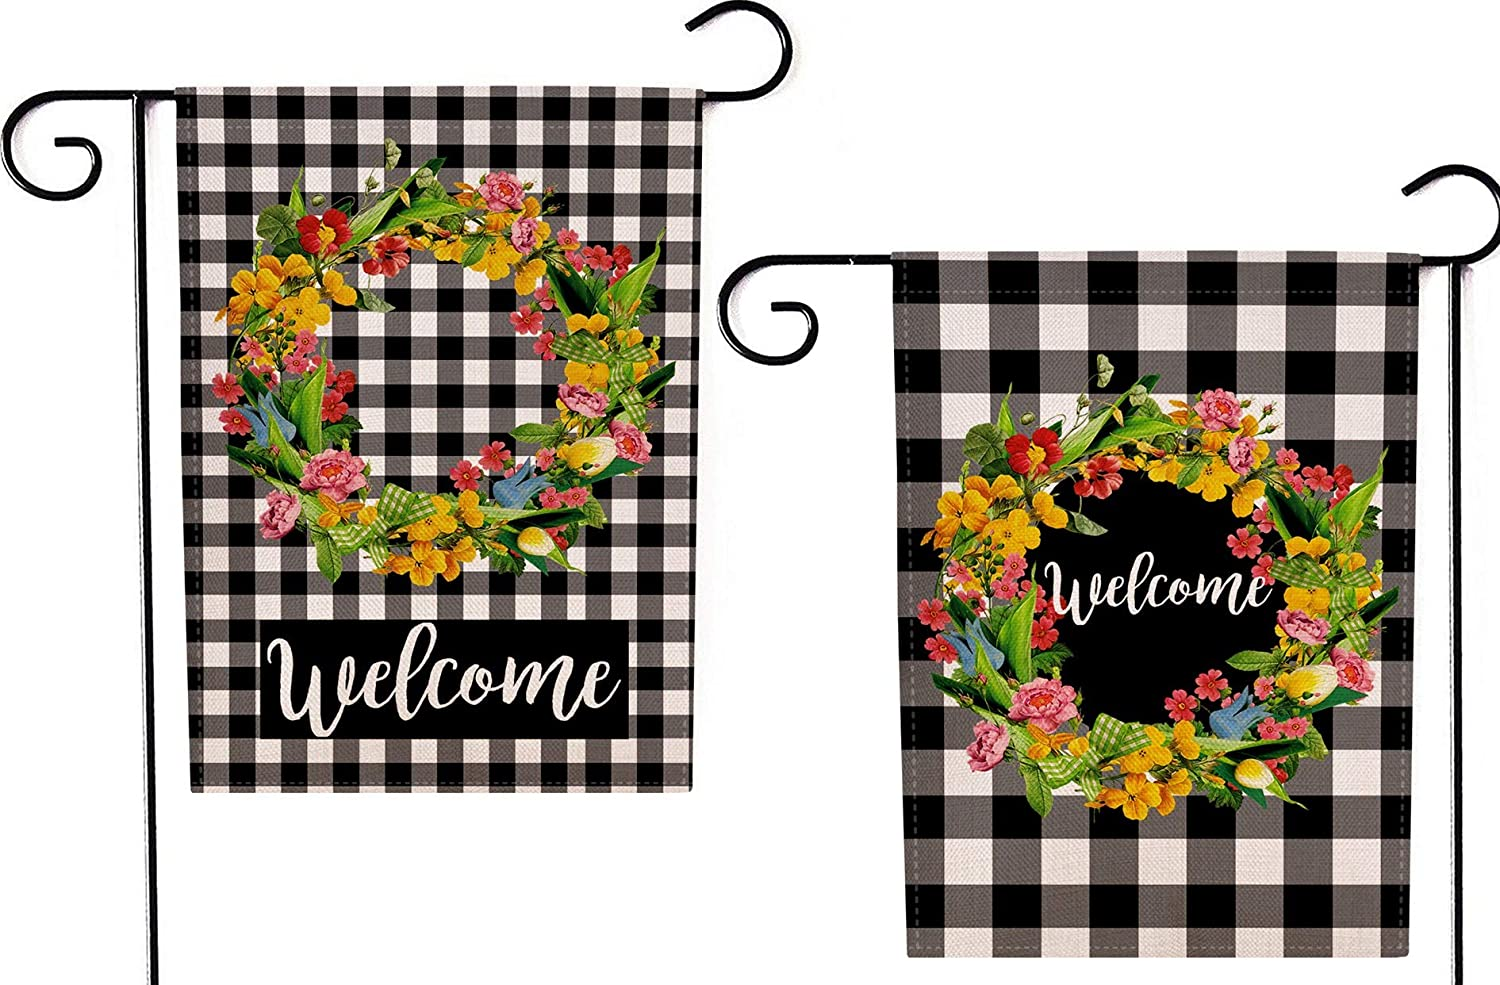 YaoChong Home Decorative Spring Summer Fall Welcome Flower Wreath Garden Flag,Autumn Buffalo Check Plaid Rustic Burlap Black White Decorative Double Sided Farmhouse Holiday Decorations 12.5 x 18 inch